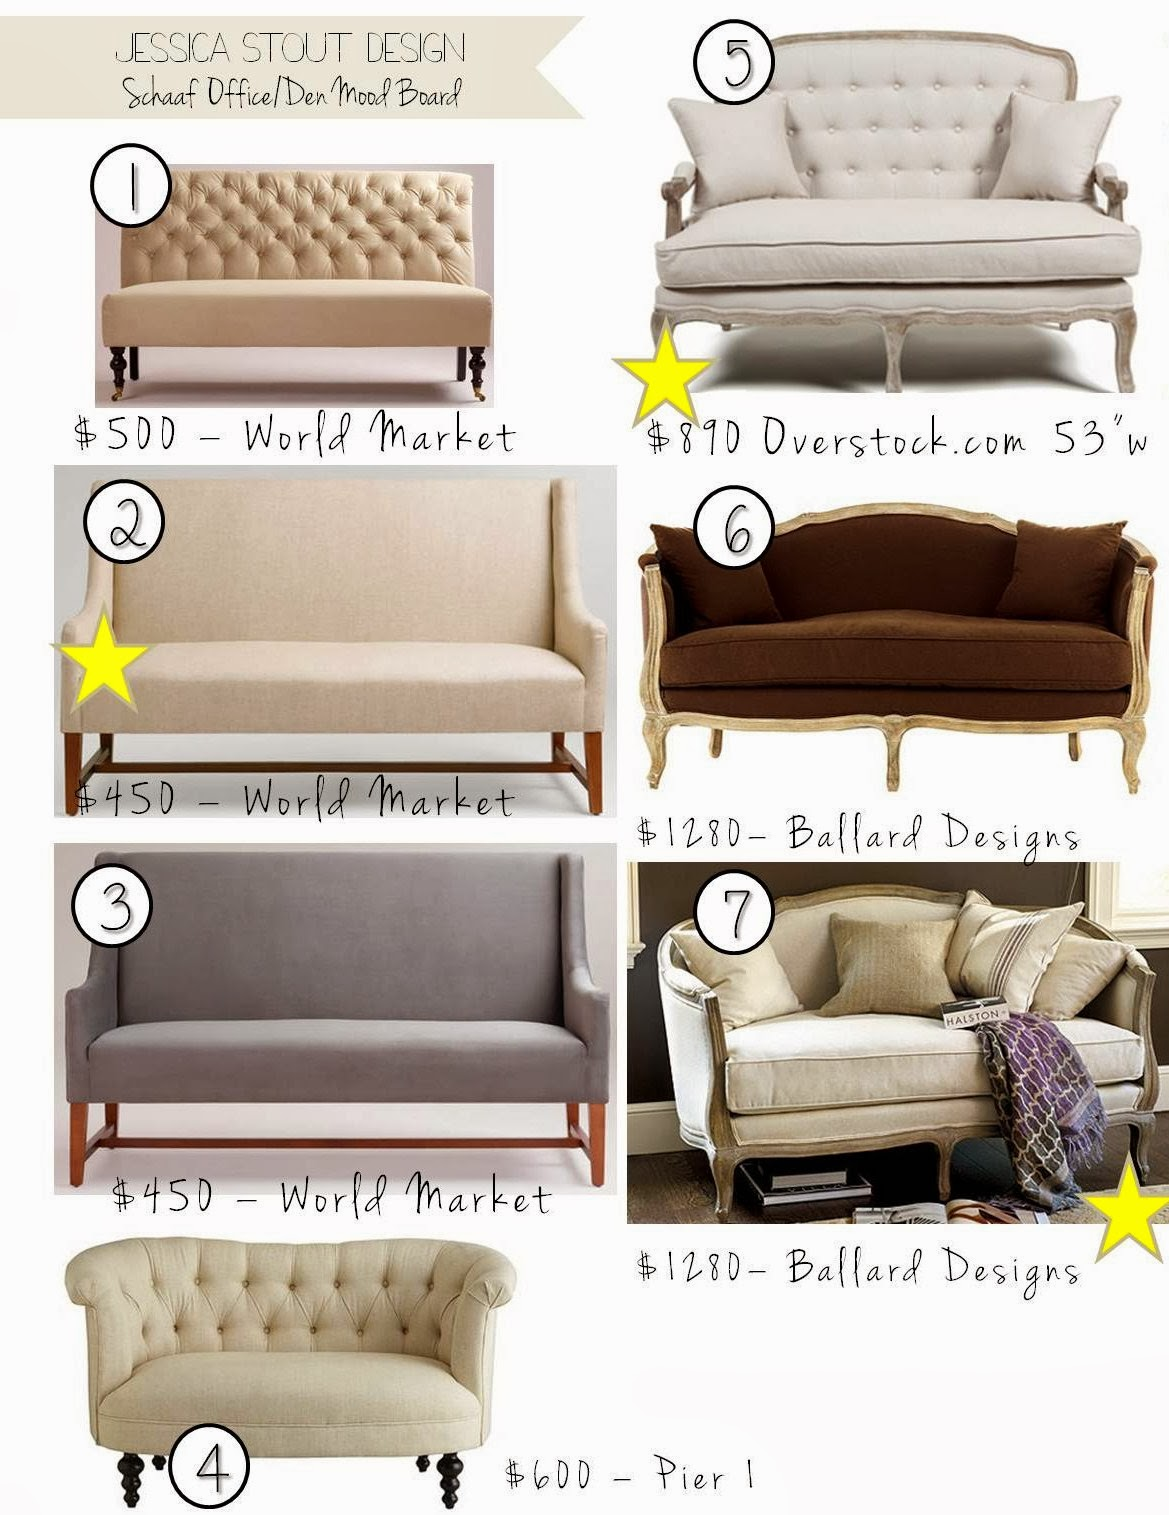 A Seating Area With A Settee, Or 2 Accent Chairs With A Table In Between.  We All Agreed, The Settee Option Would Be Best For The Room.